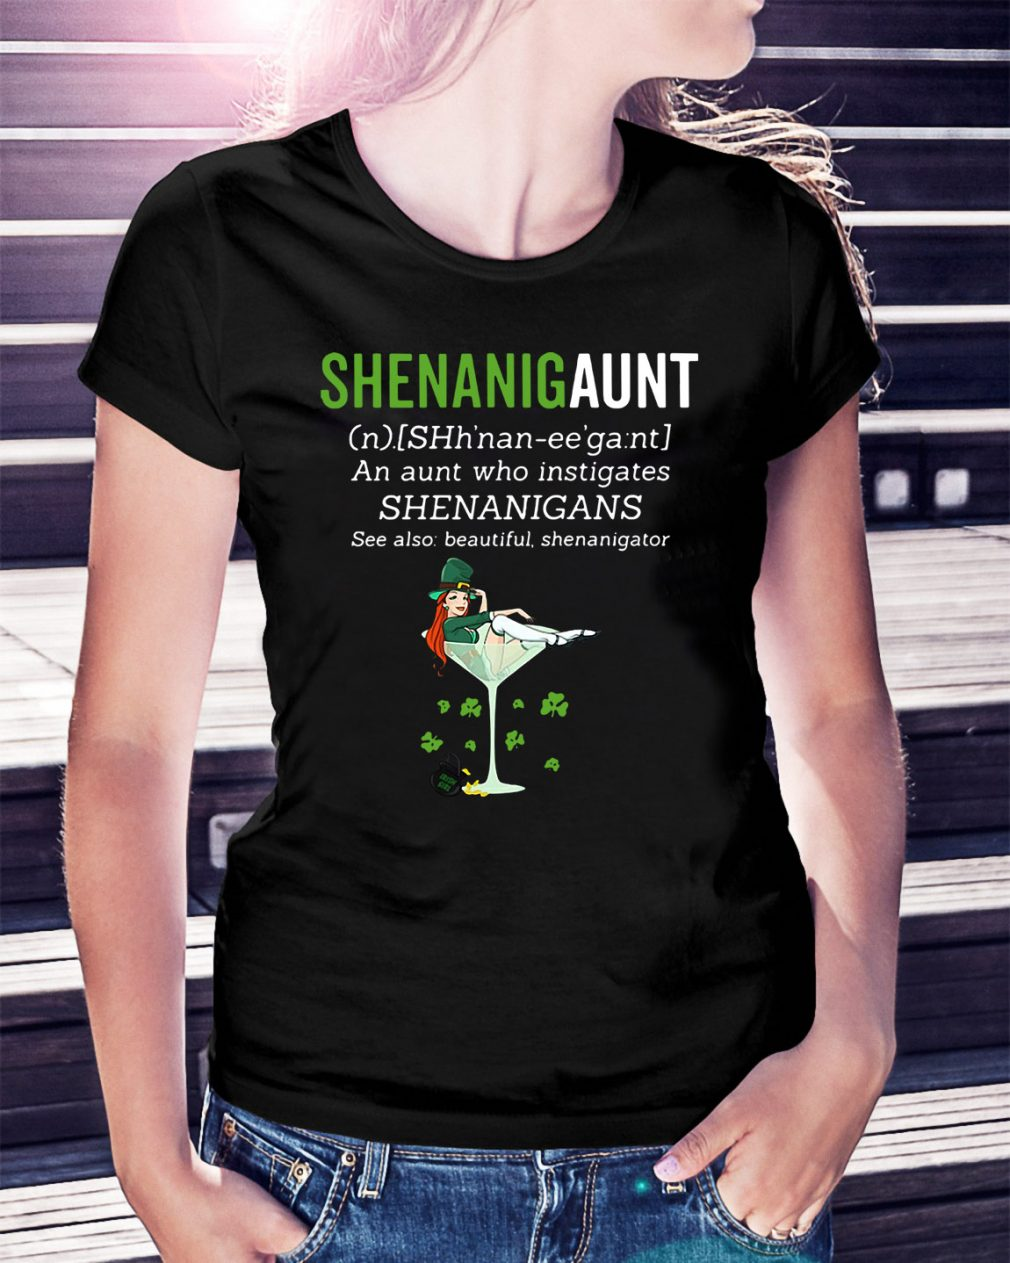 Shenanigunt definition Ladies Tee